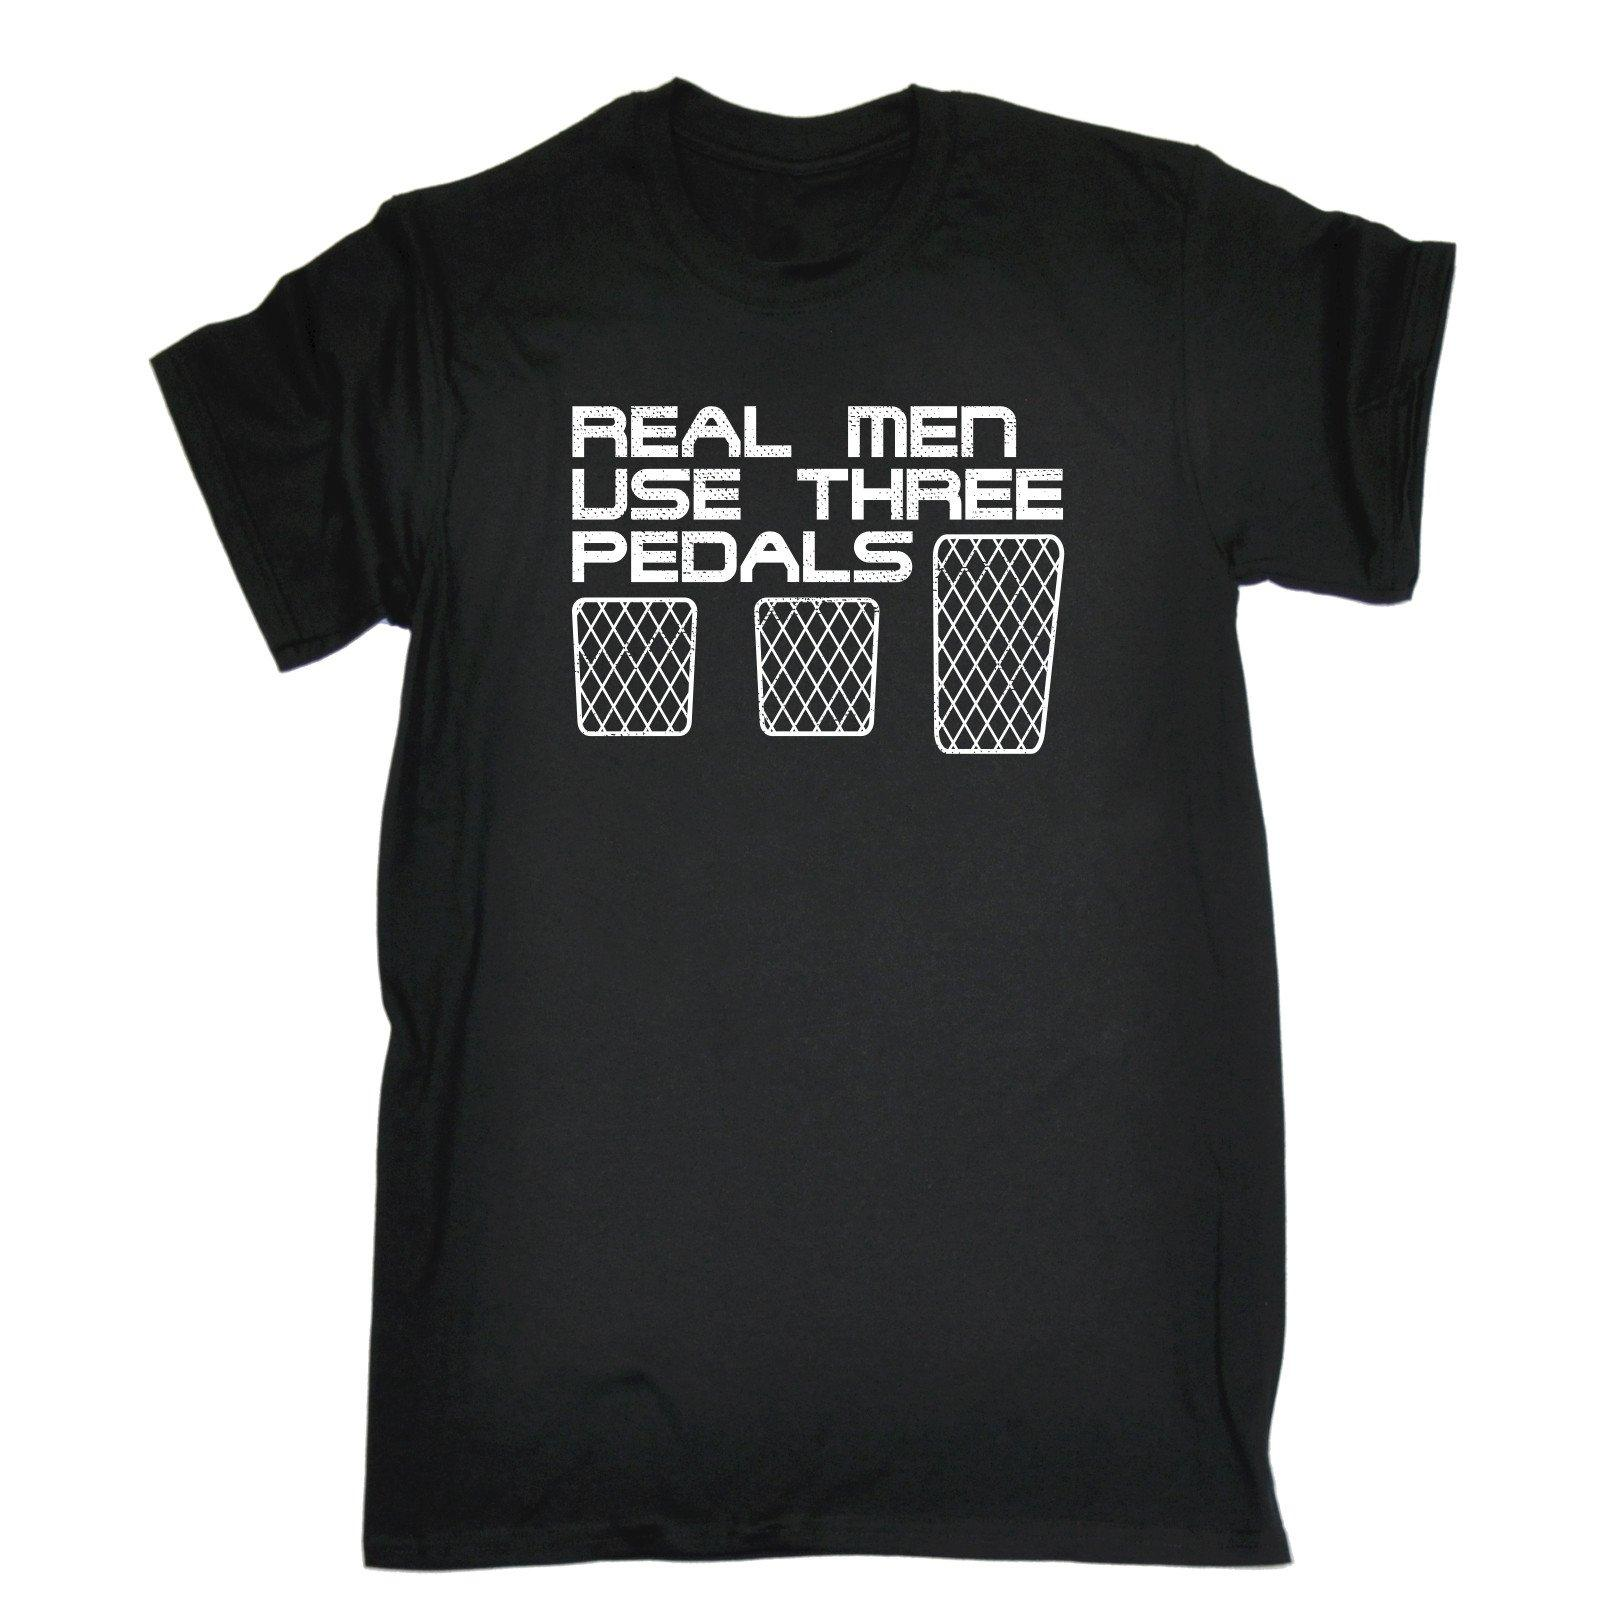 Real Men Use Three Pedals T Shirt Race Car Fast Track Speed Racer